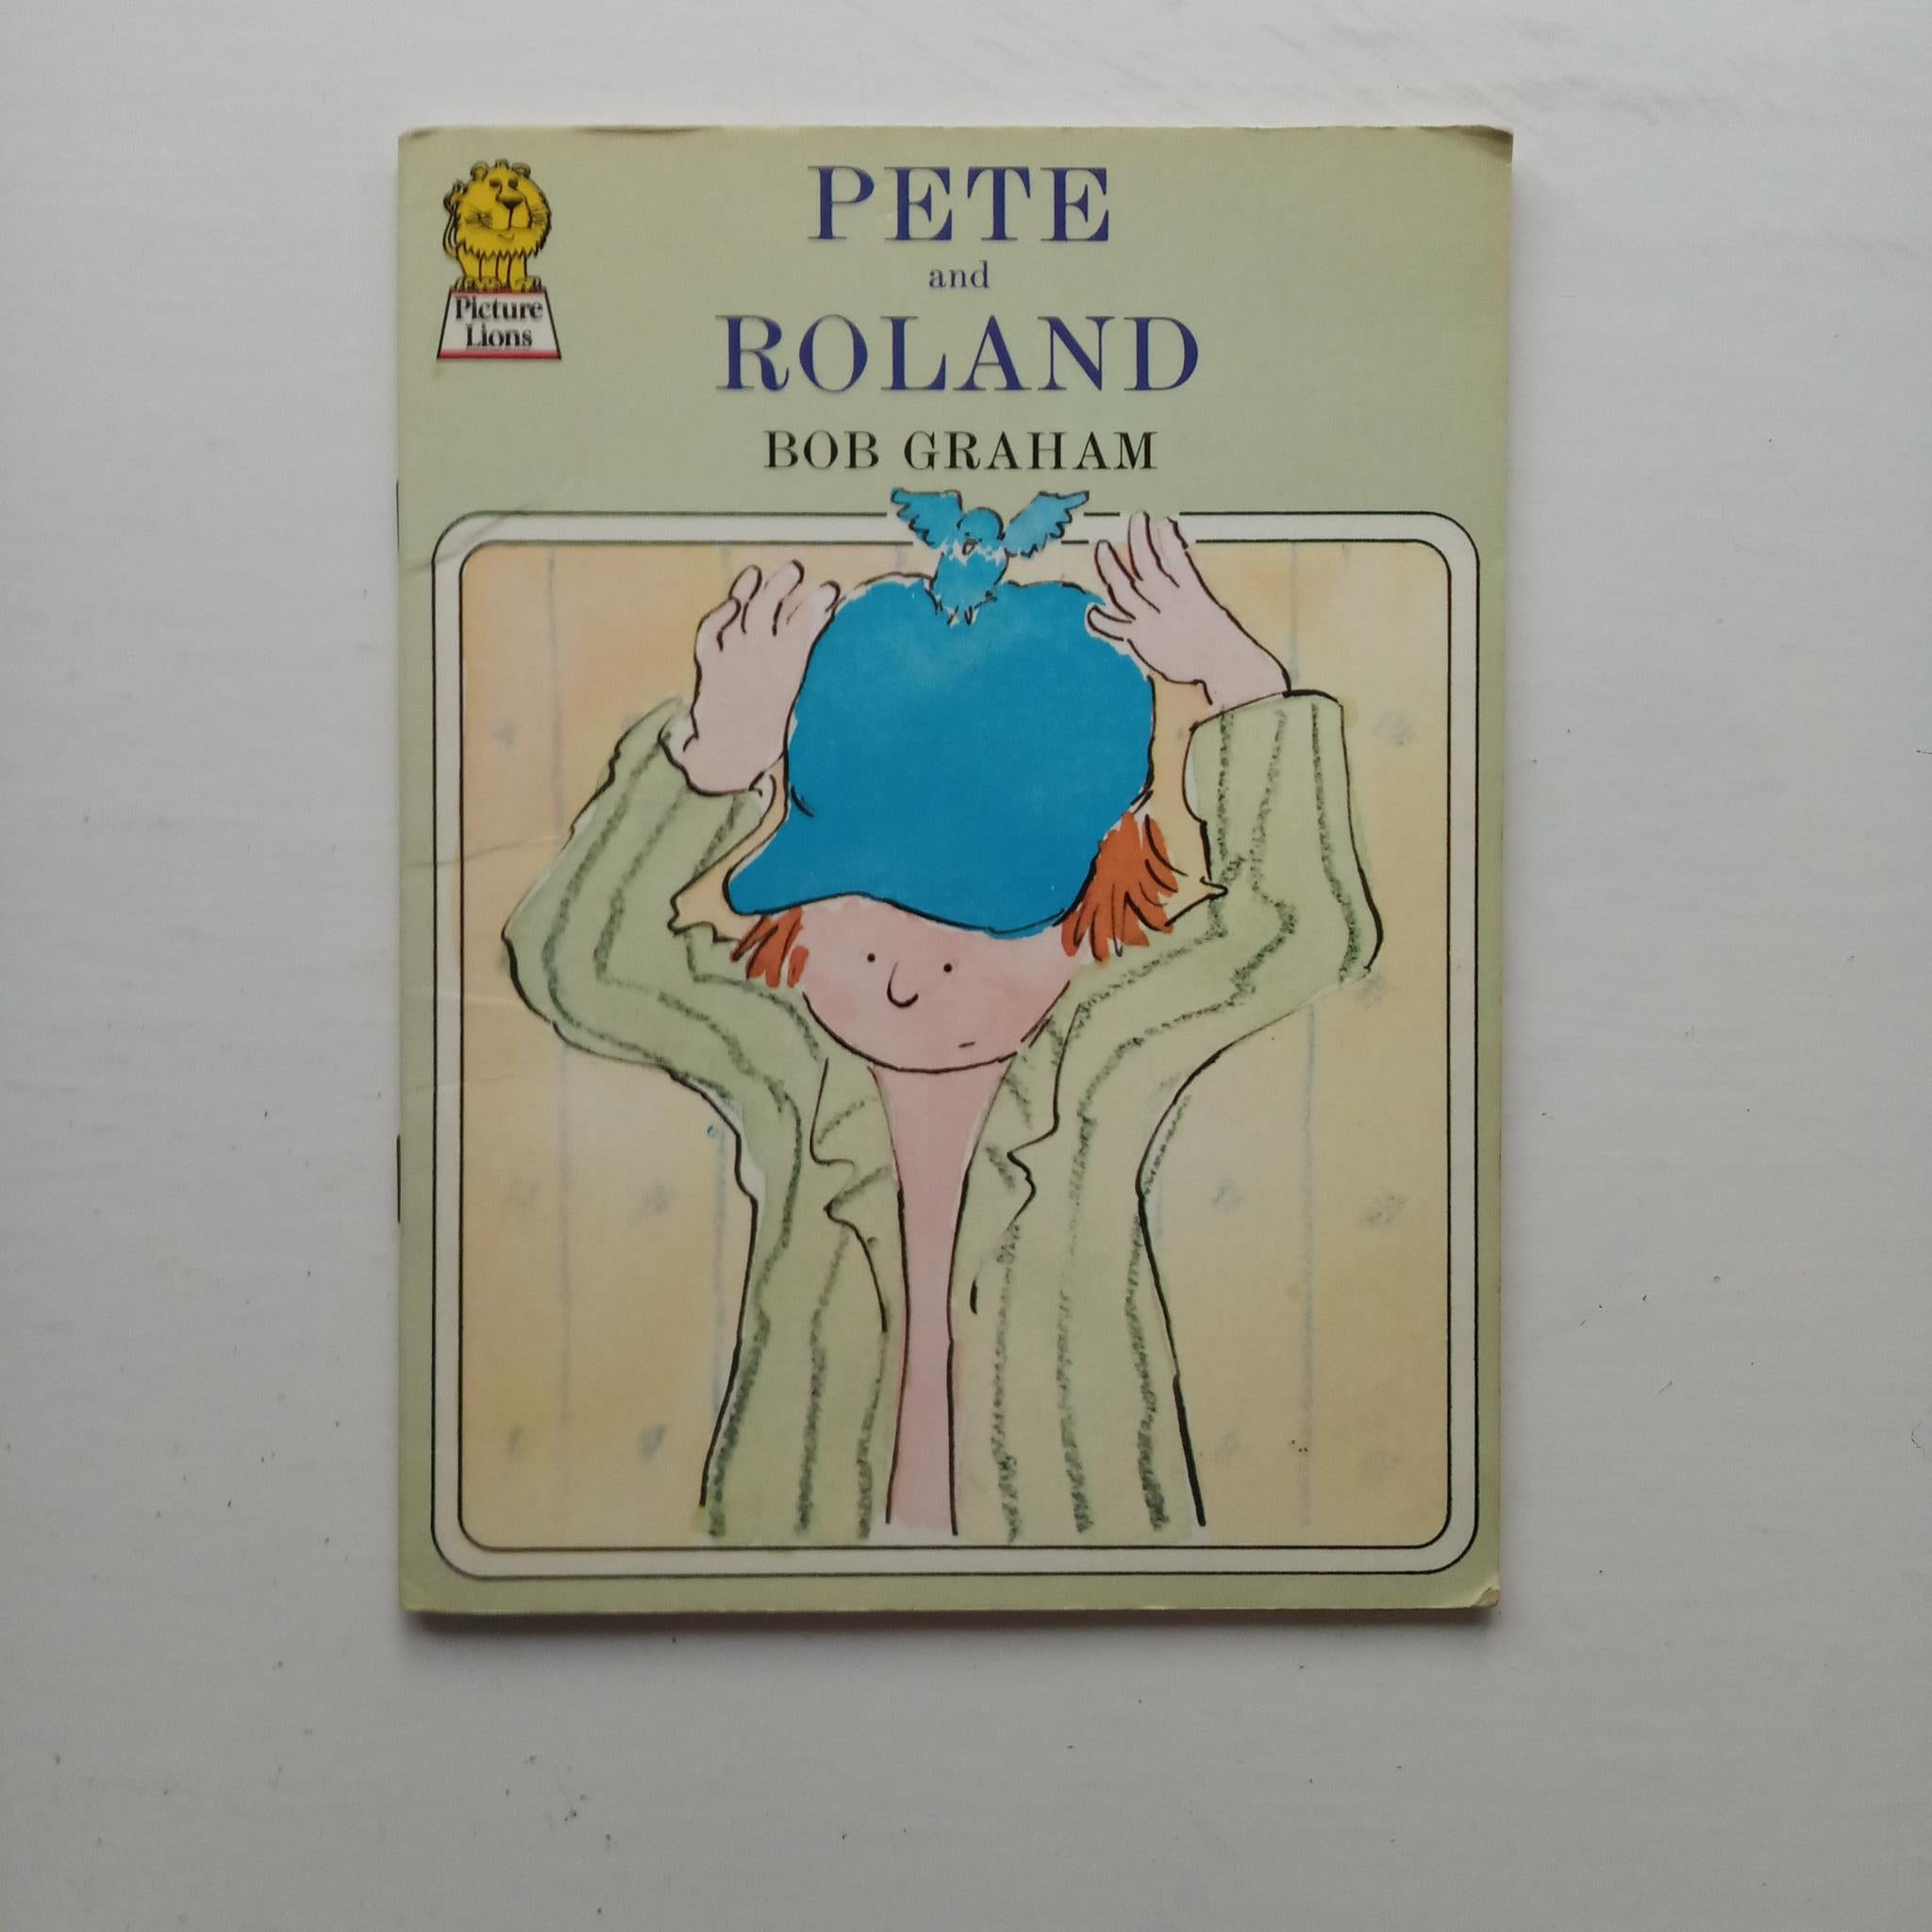 Pete and Roland by Bob Graham